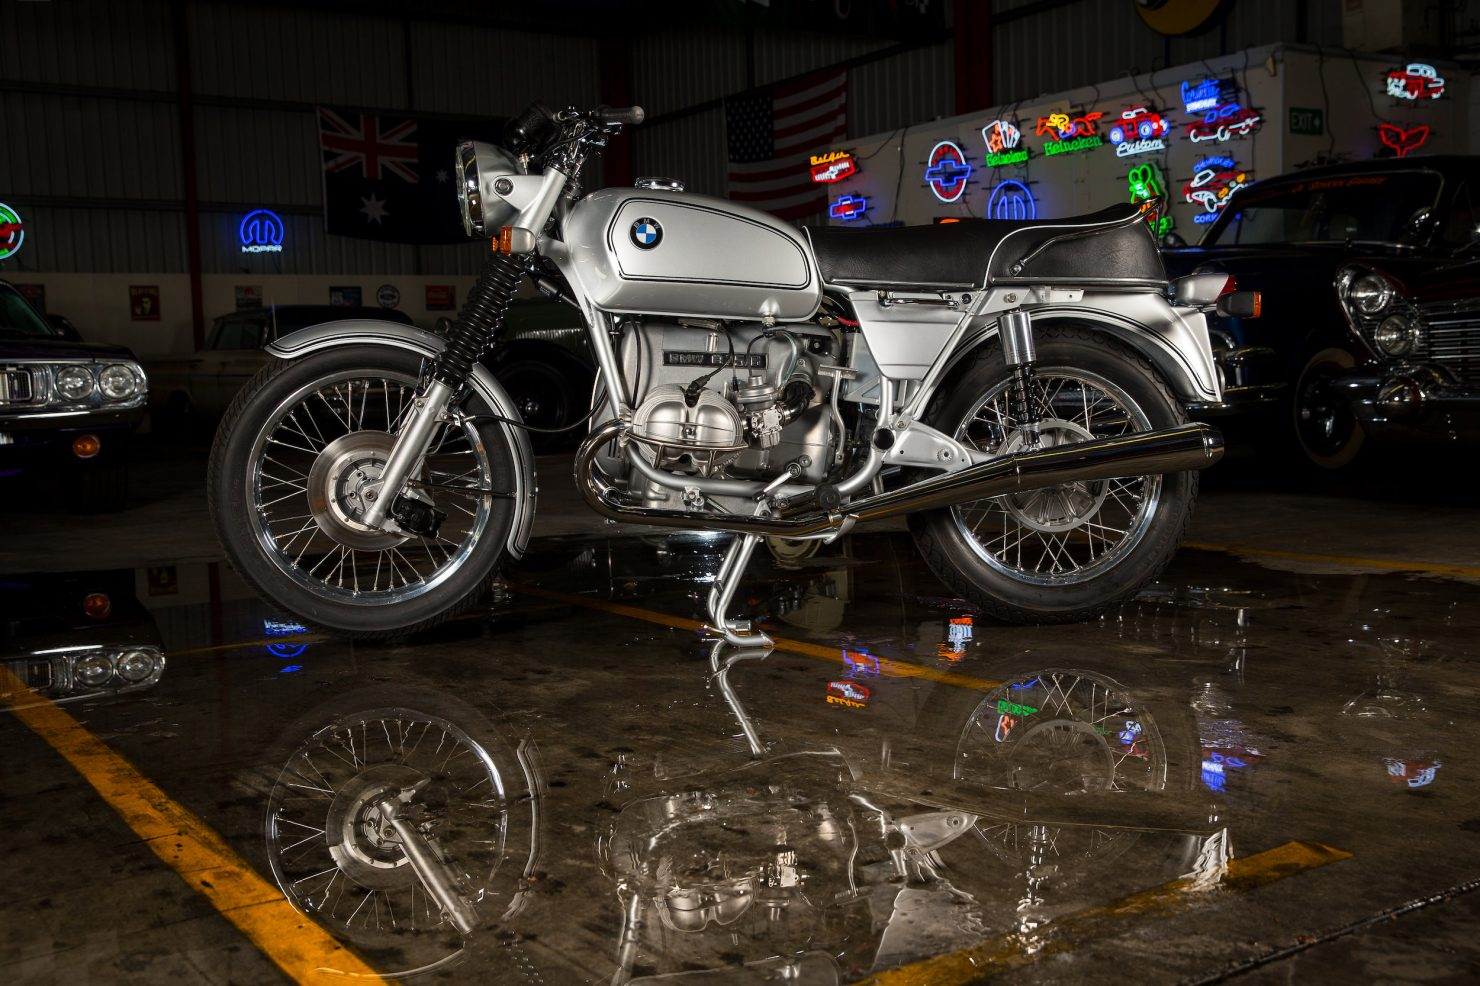 AM6P0514 1480x986 - Immaculately Restored: BMW R75/6